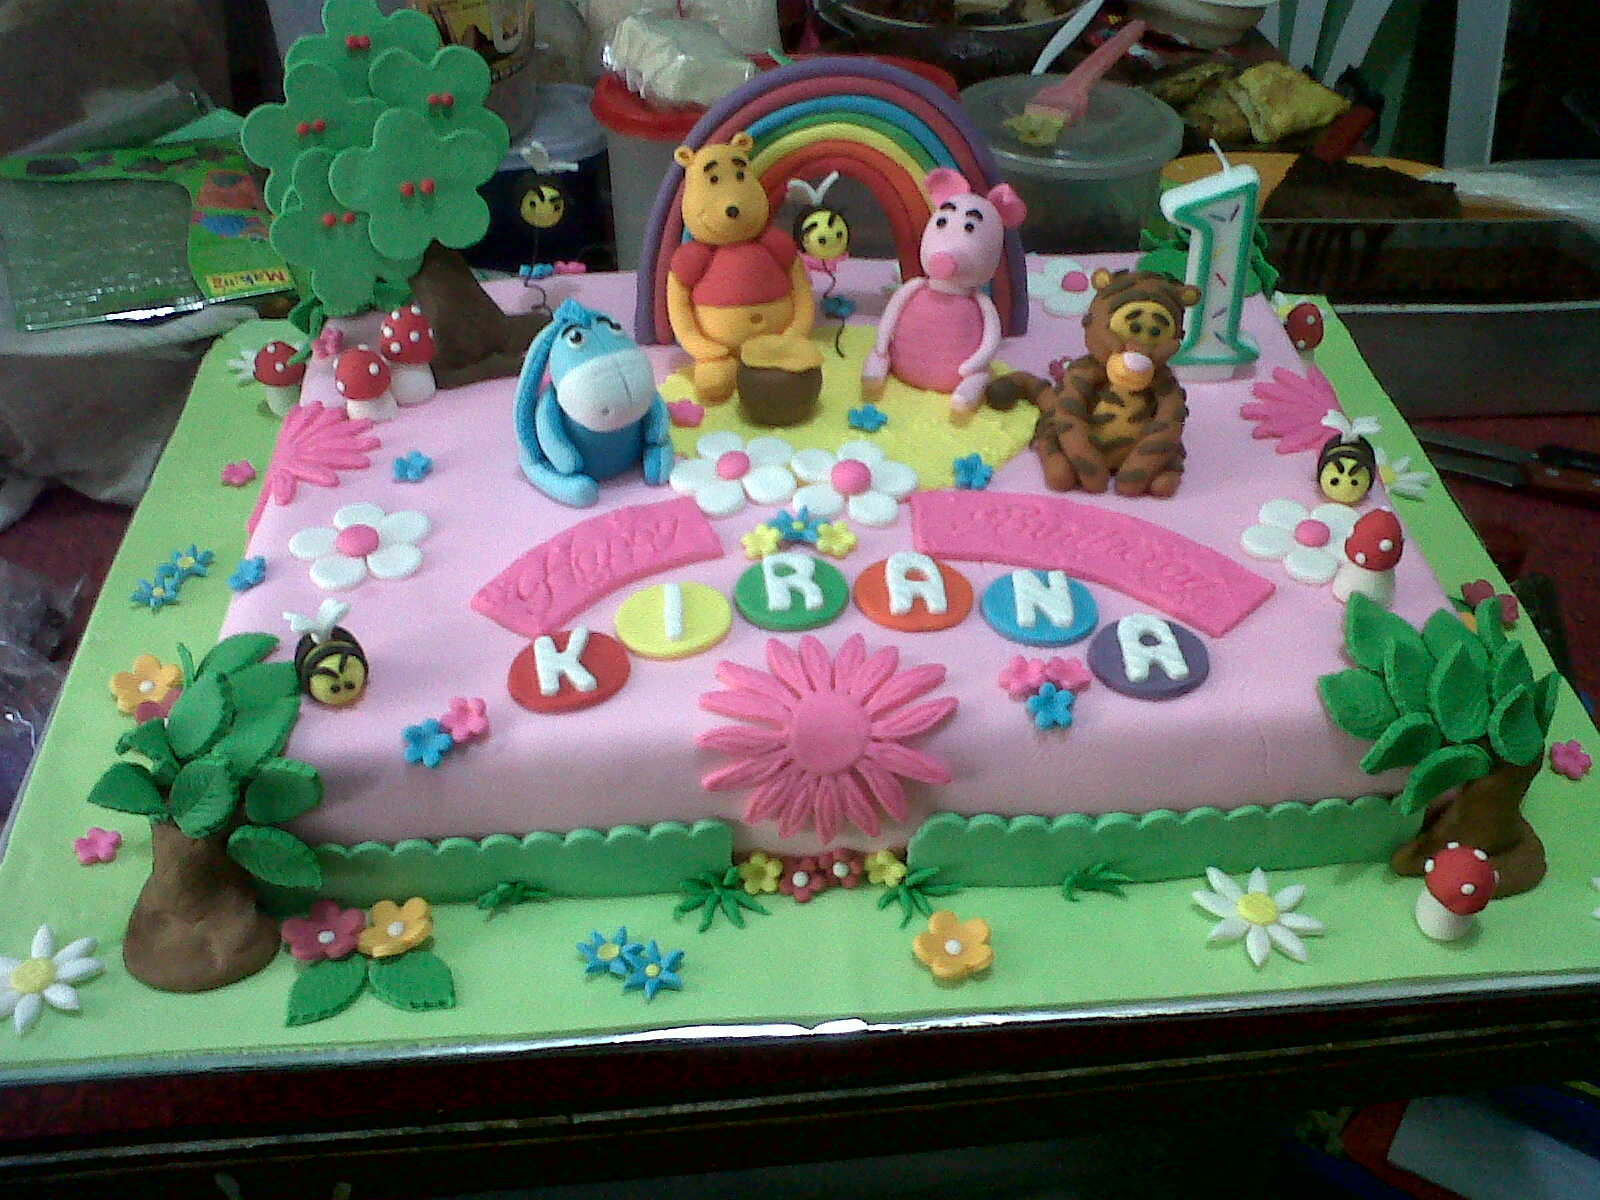 Birthday Cake Images With Name Kiran : Nens Cake: Kiran Birthday